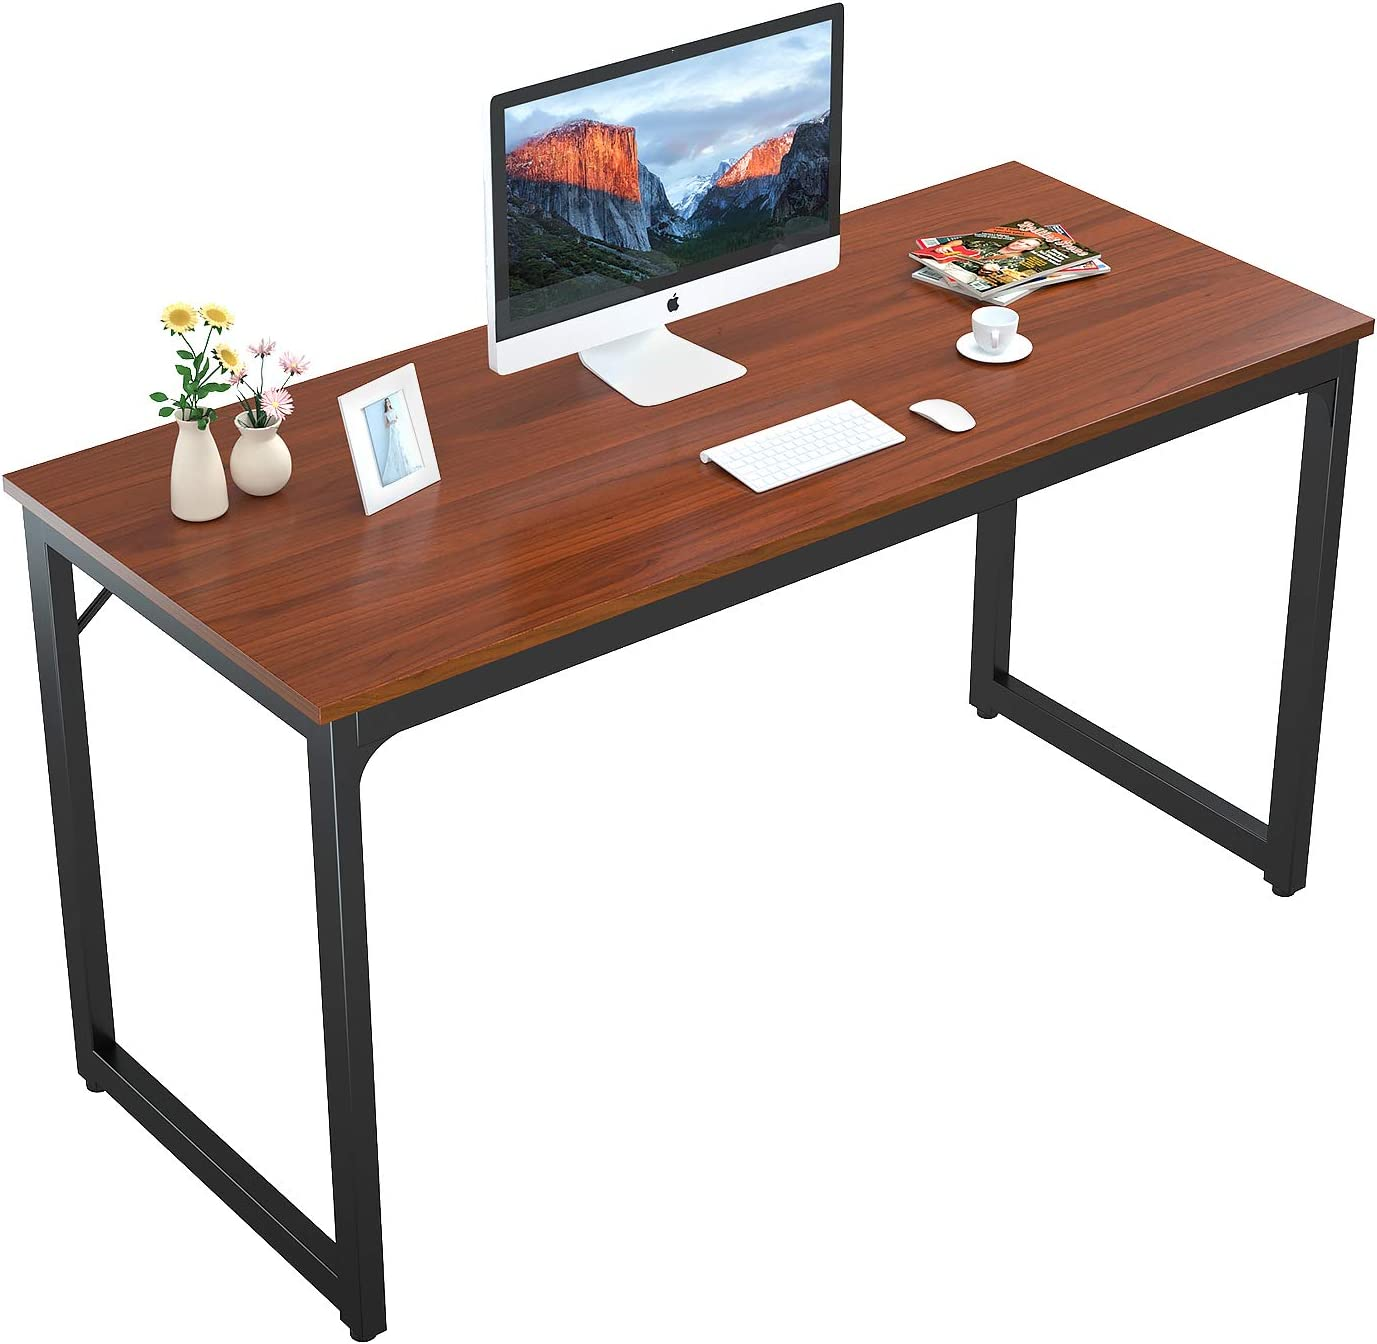 "Foxemart 55"" Computer Desk Modern Sturdy Office Desk 55 Inch PC Laptop Notebook Study Writing Table for Home Office Workstation, Teak"